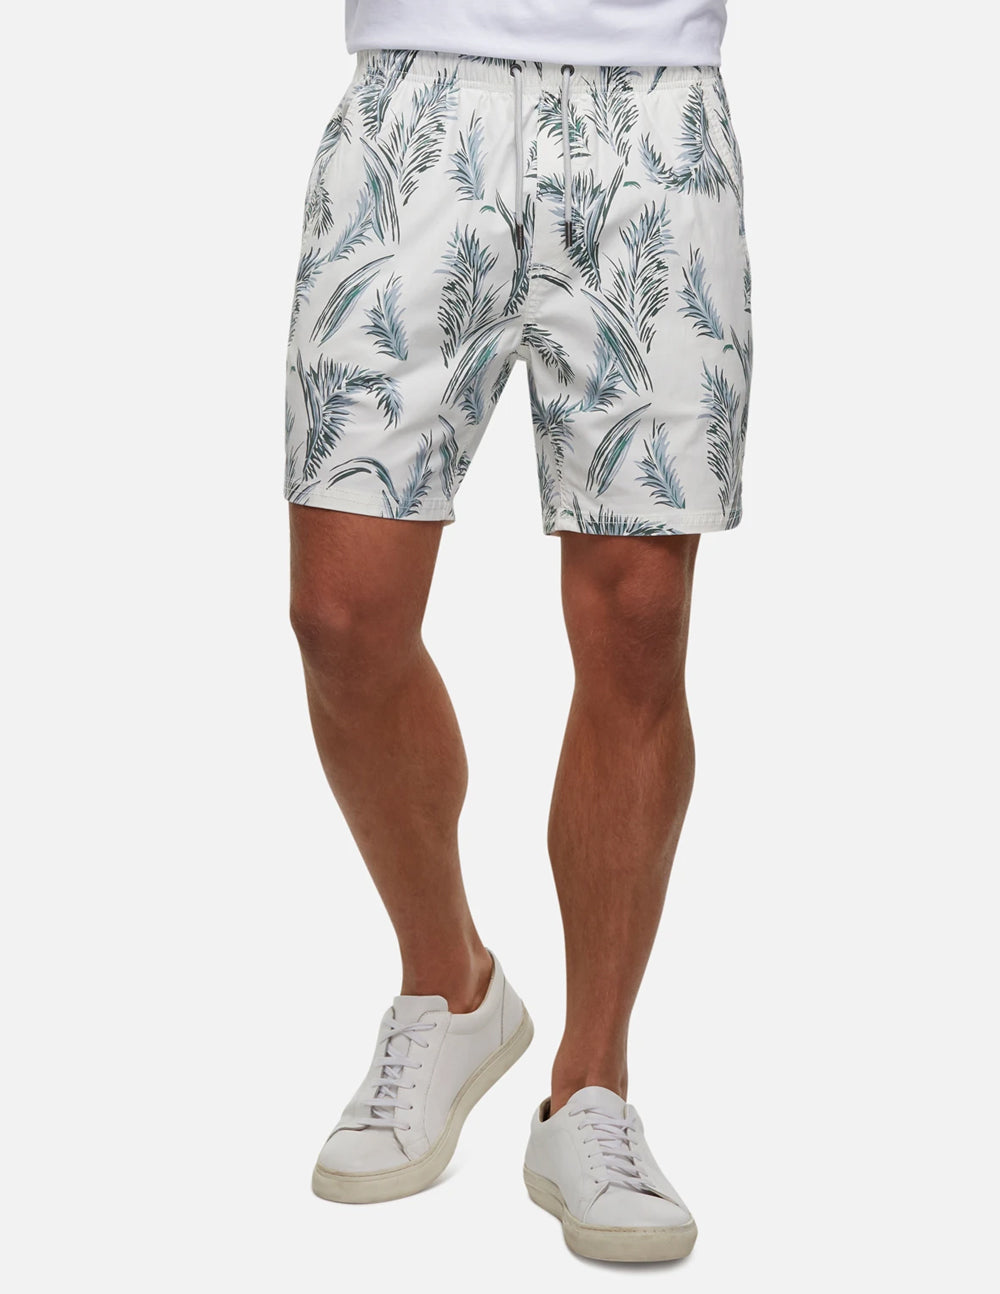 The Bangalow Bahama Short